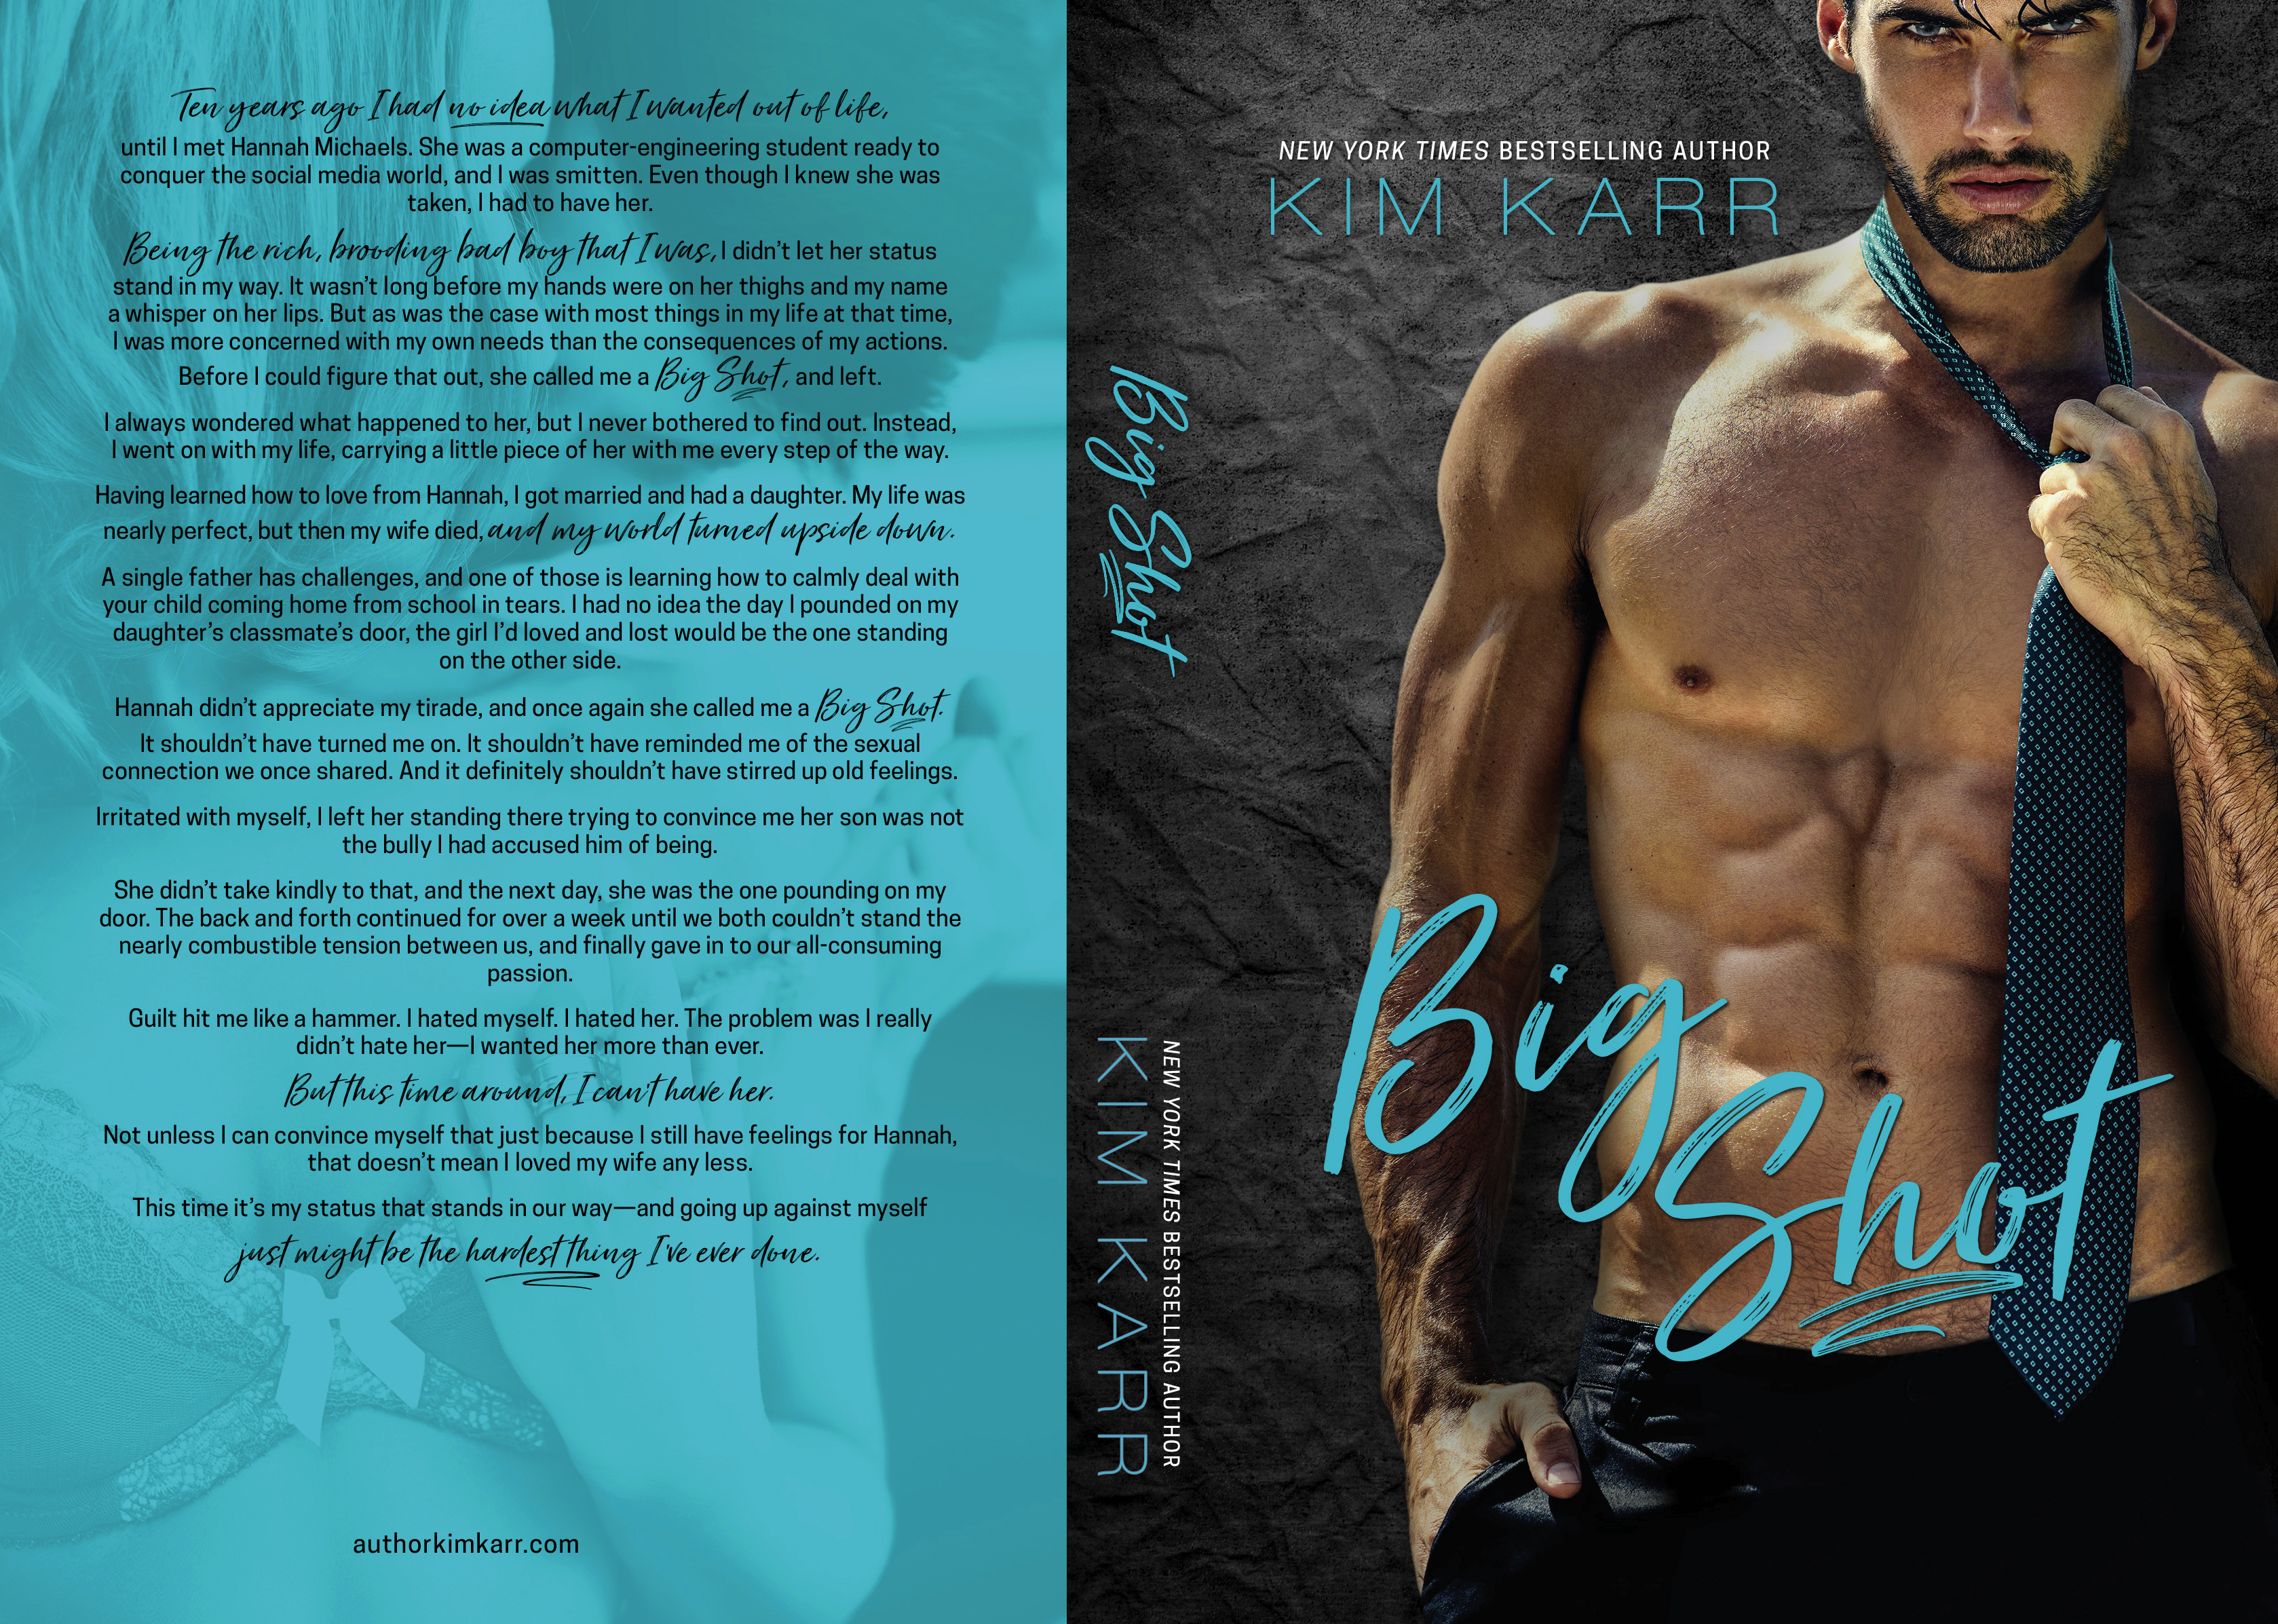 Big Shot by Kim Karr Cover Reveal